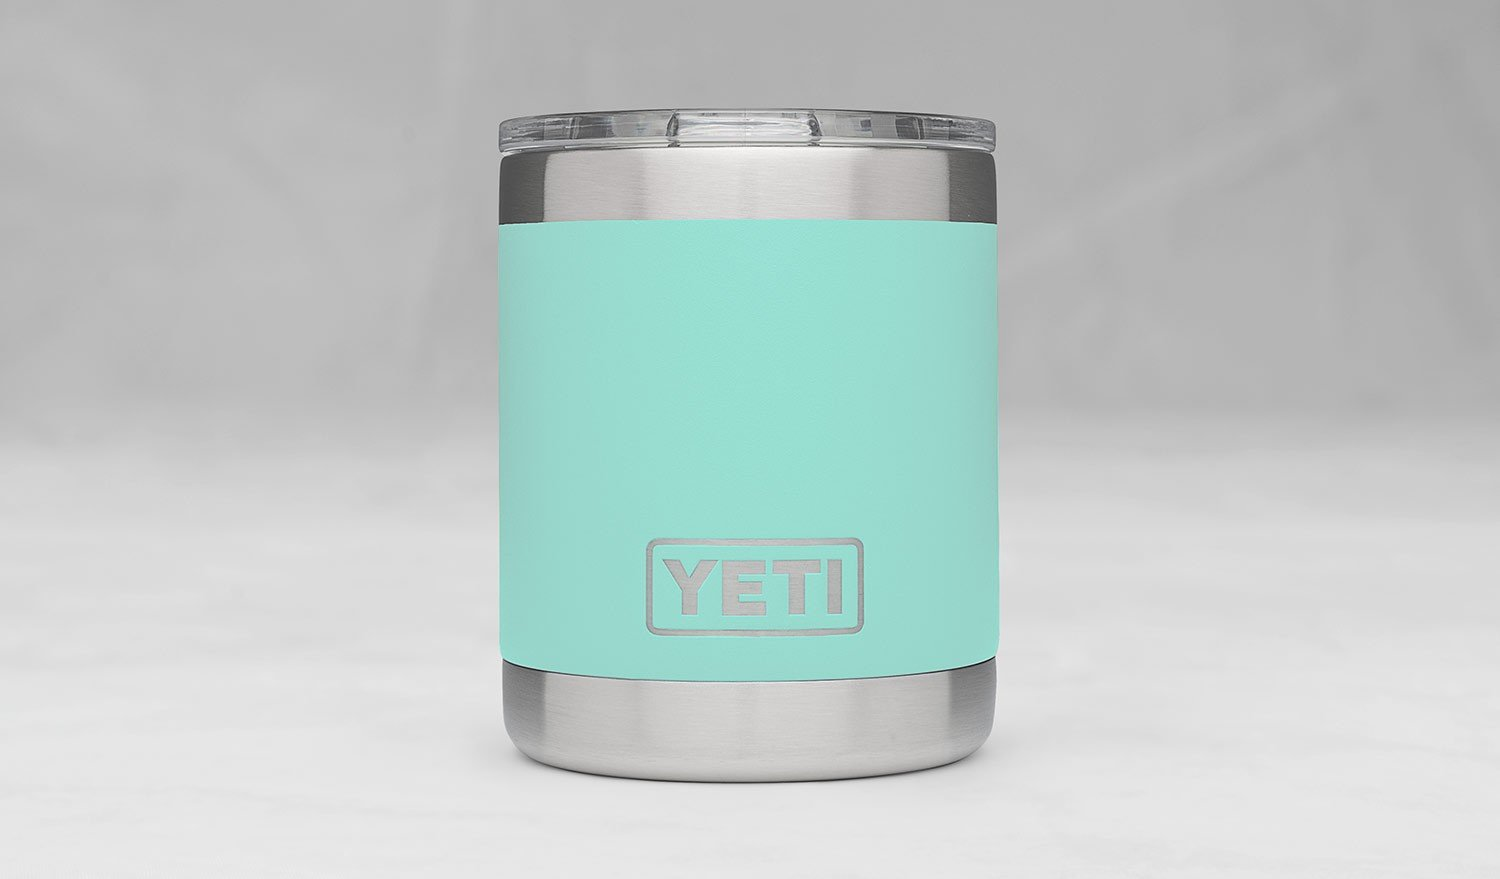 YETI Rambler 10oz Vacuum Insulated Stainless Steel Lowball with Lid, Seafoam DuraCoat by YETI (Image #3)